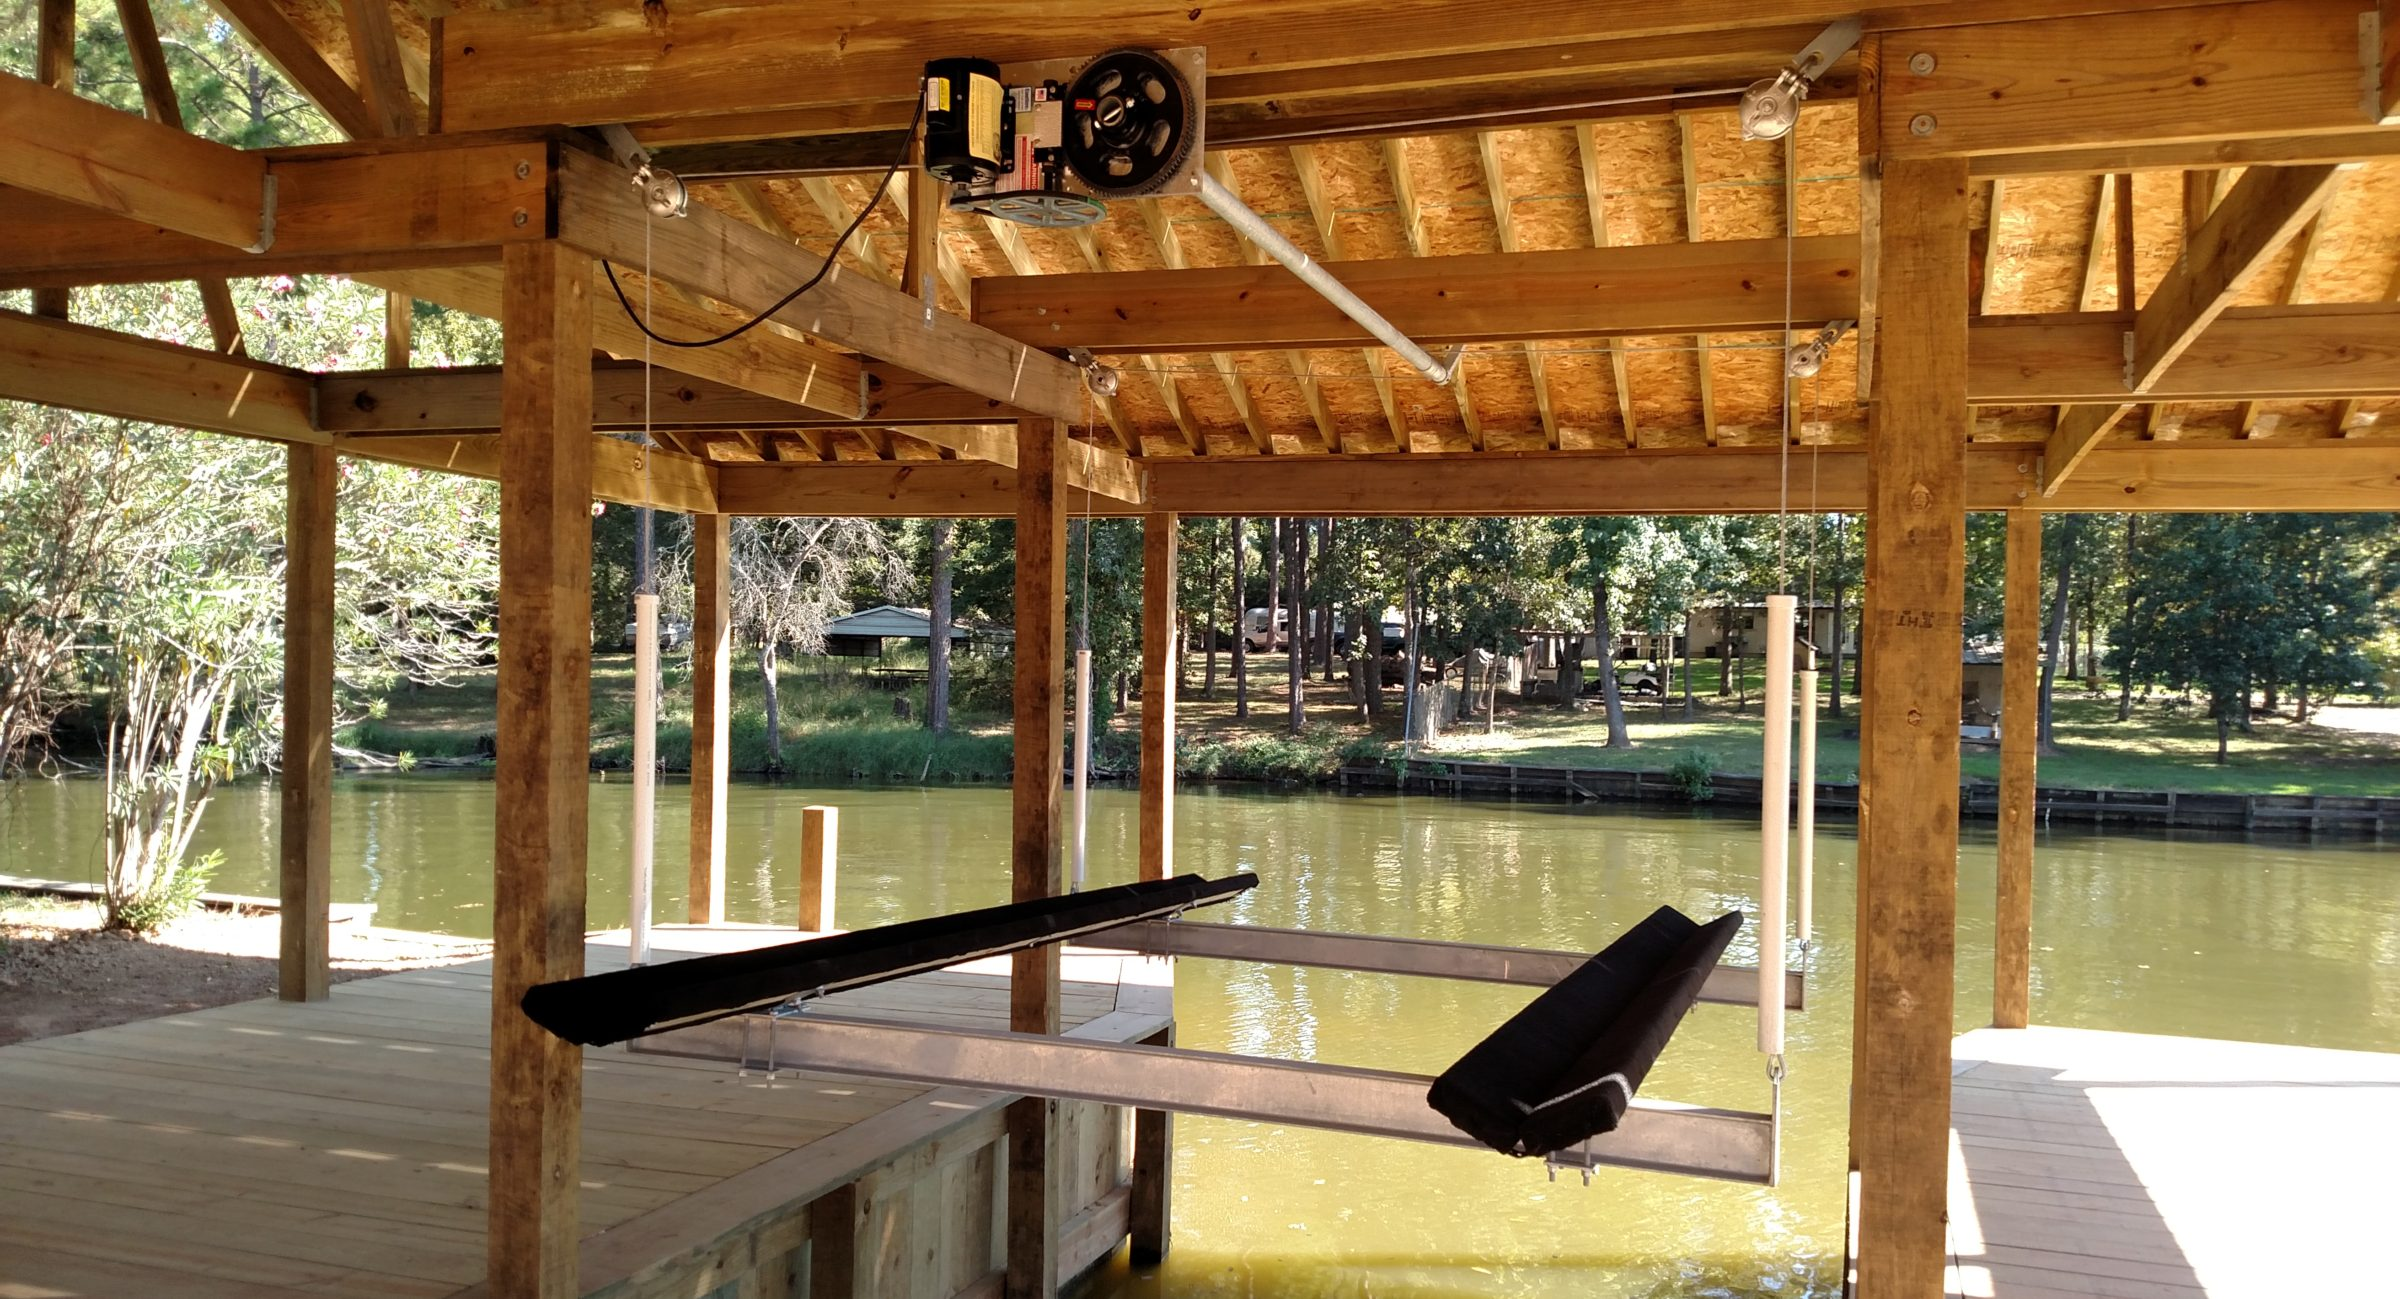 Boat house construction lift with cradle on lake Houston Crosby, t x